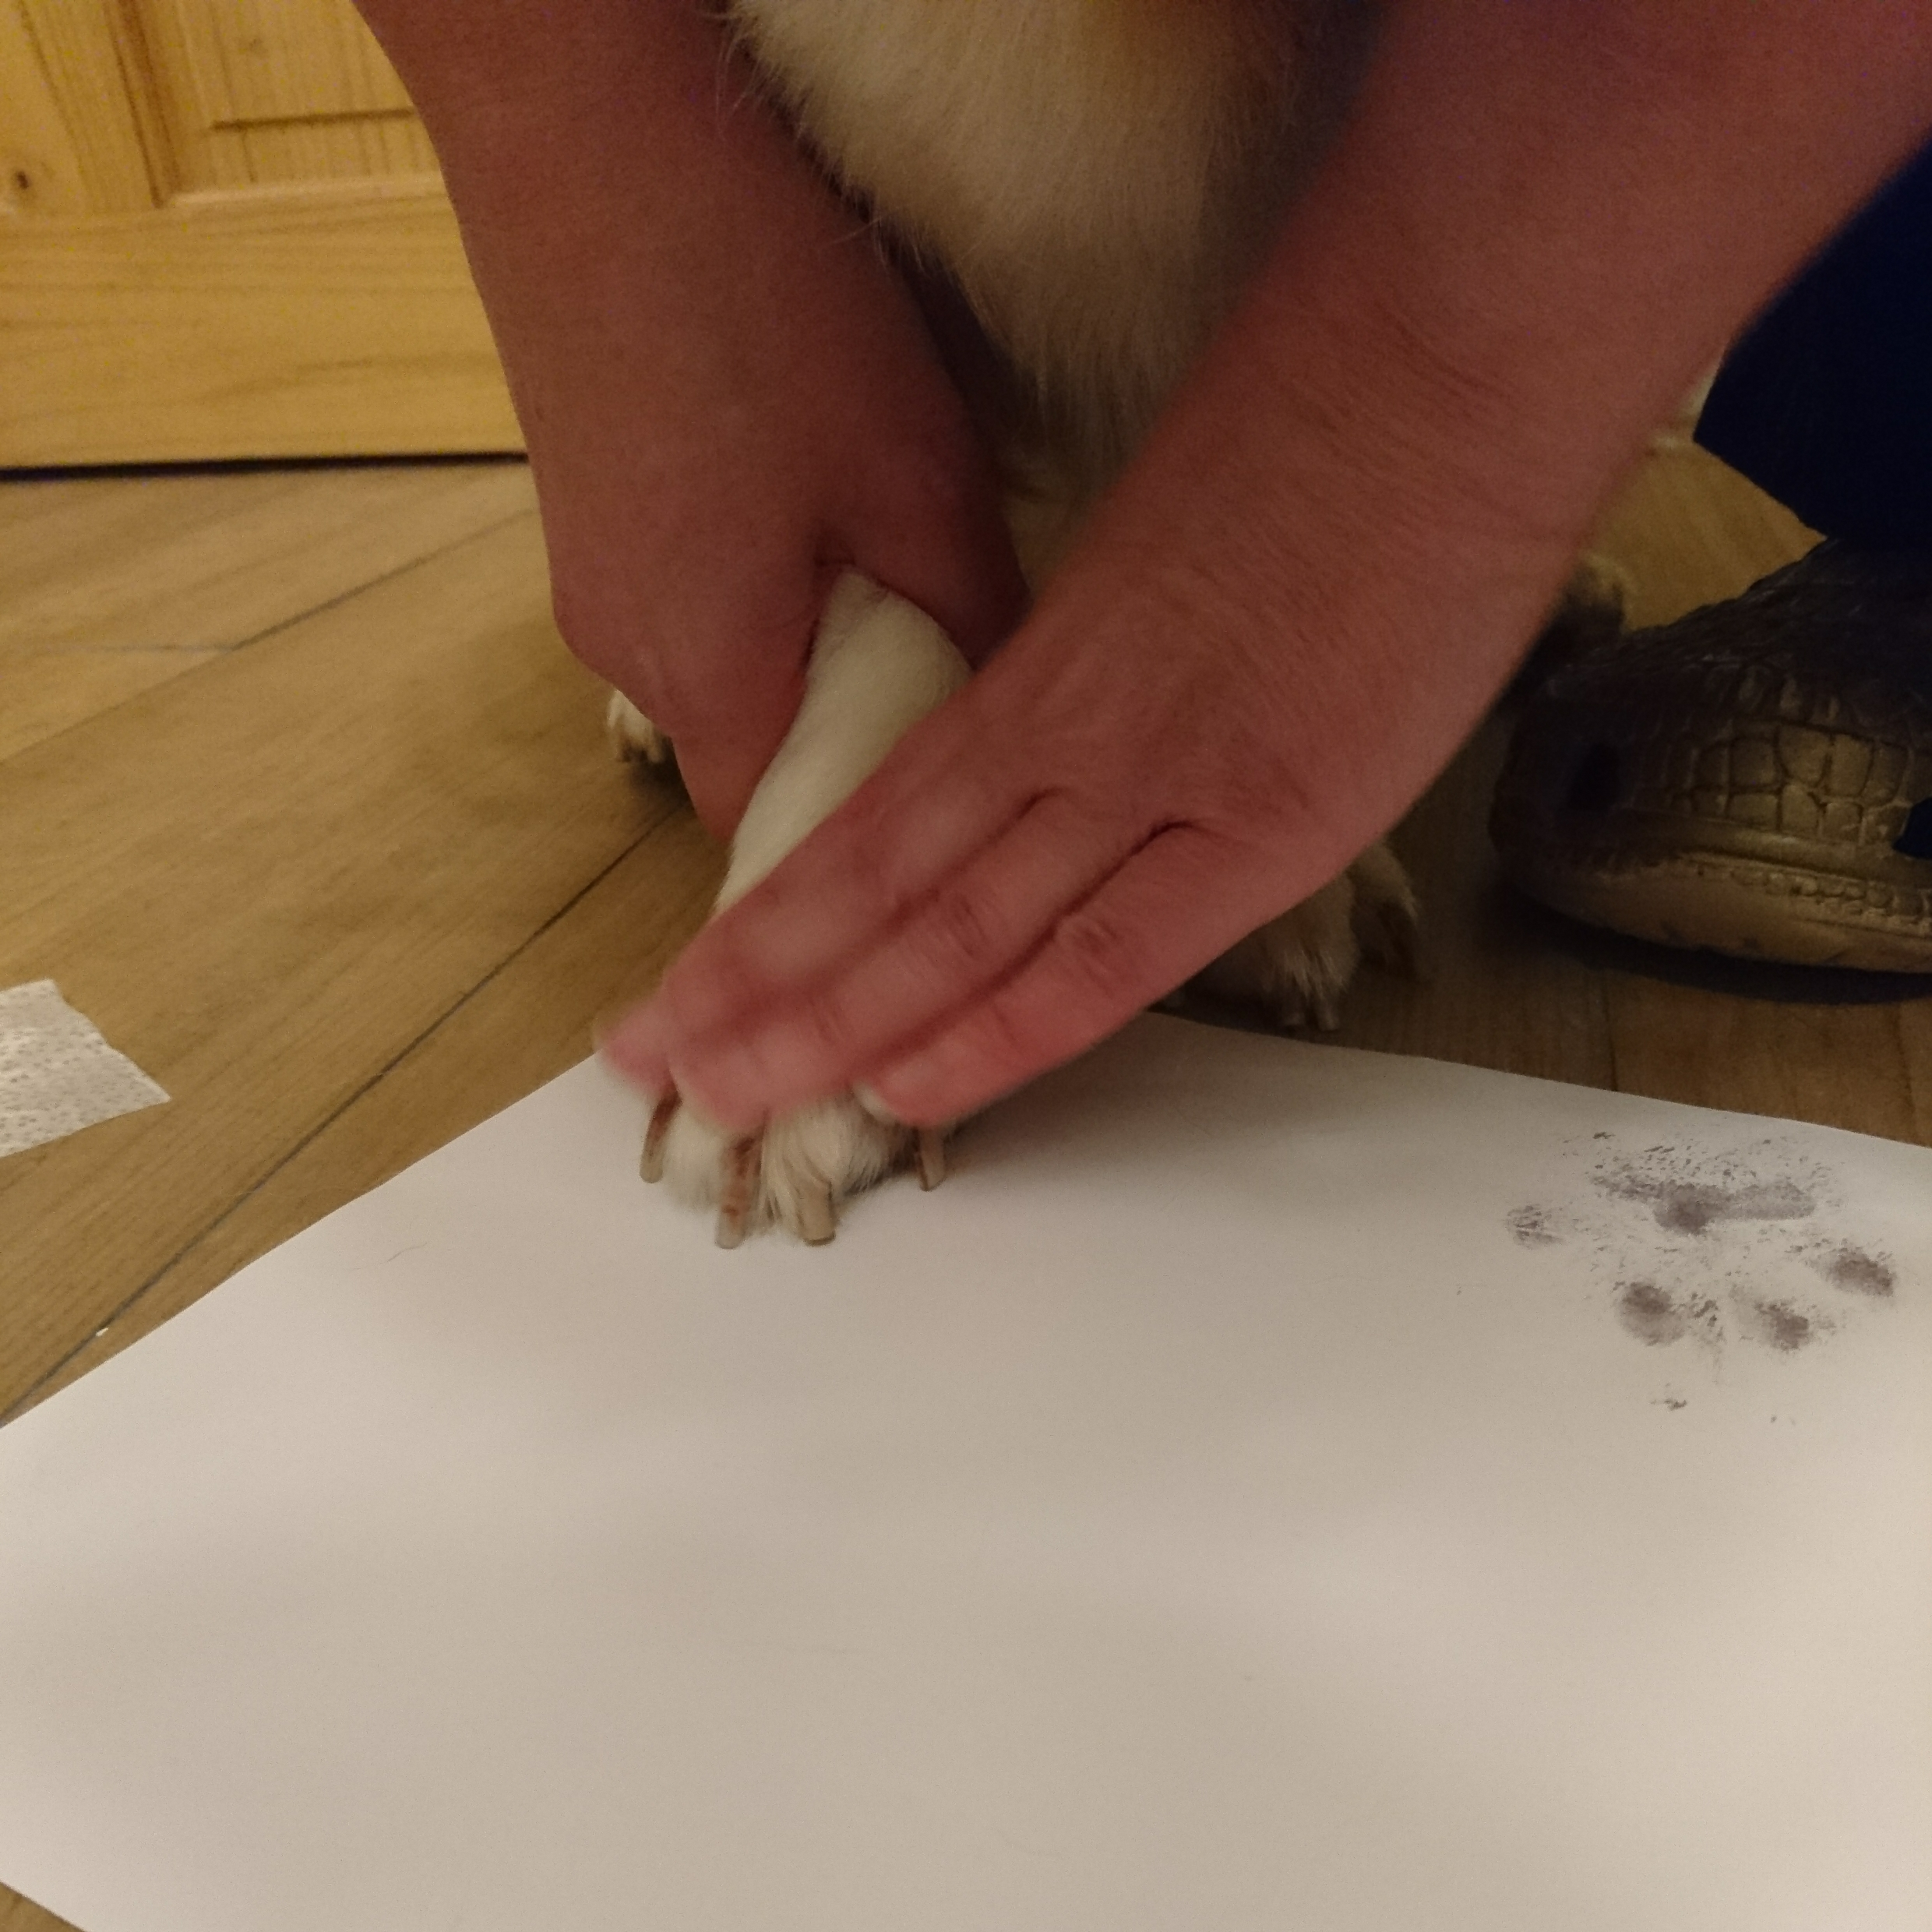 Placing Wirral the Corgis paw onto inkless paper to make an inkless paw print